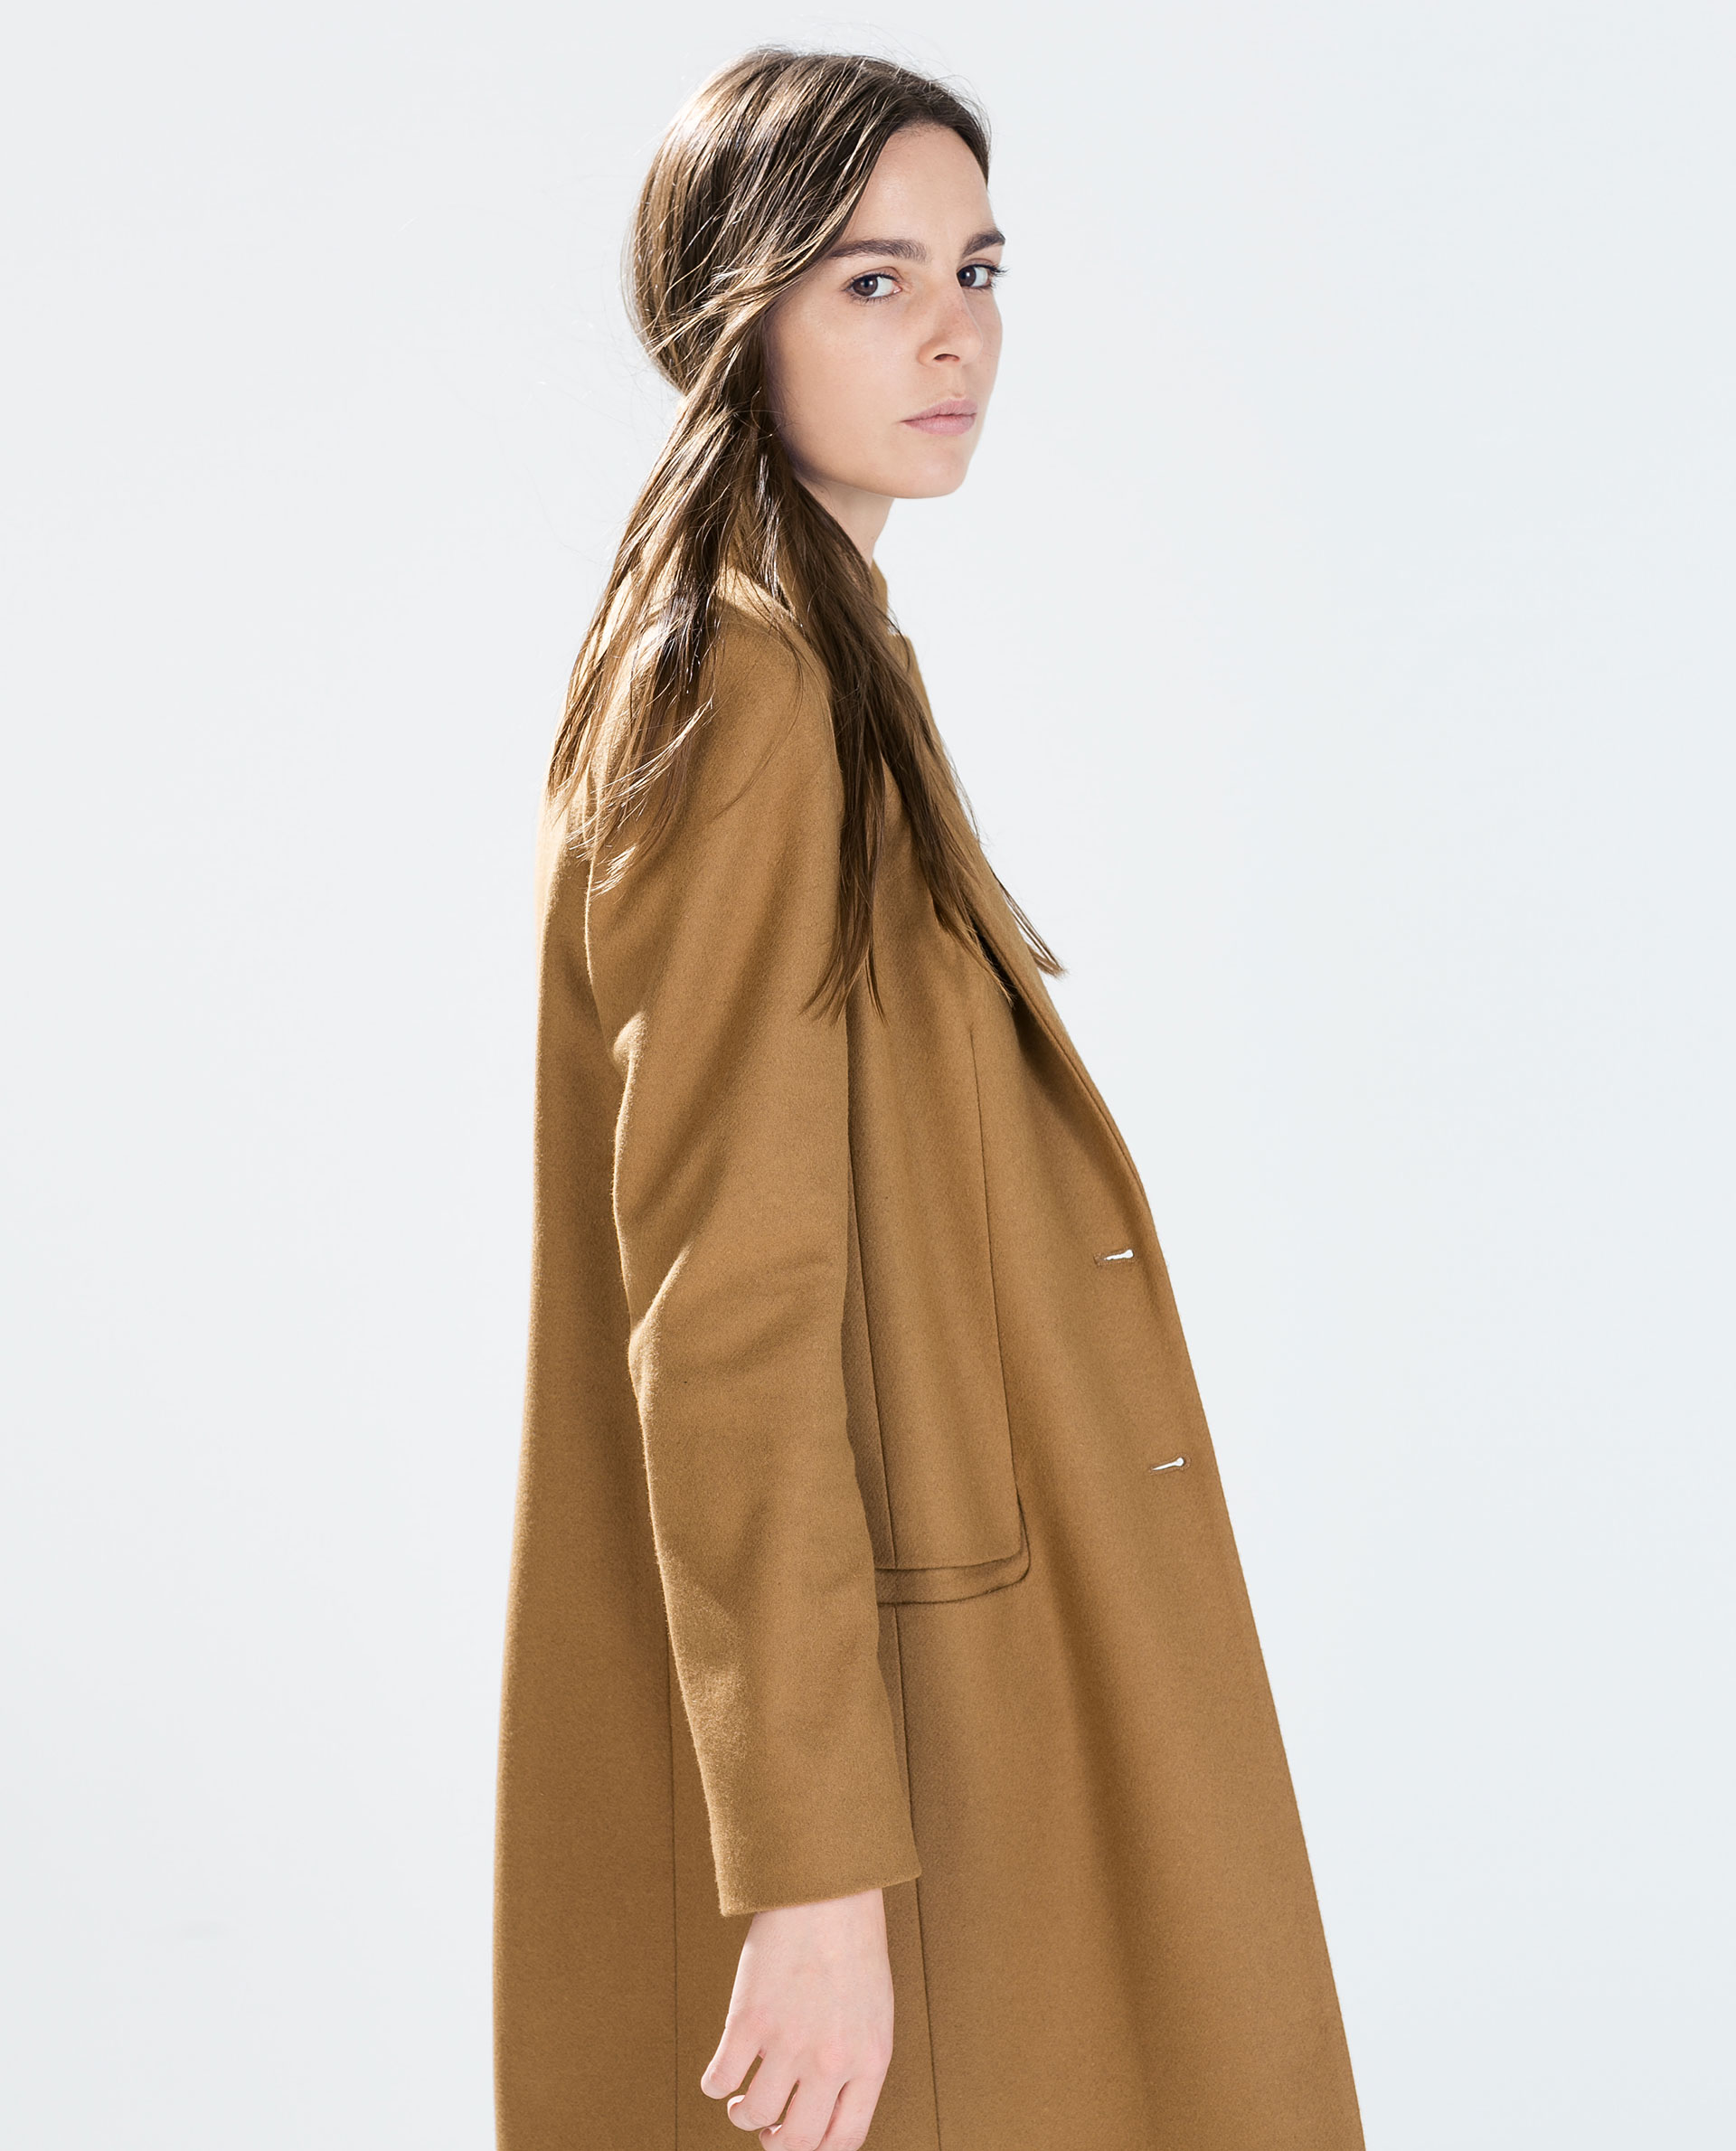 CAMEL COAT - Outerwear - WOMAN - SALE | ZARA United States